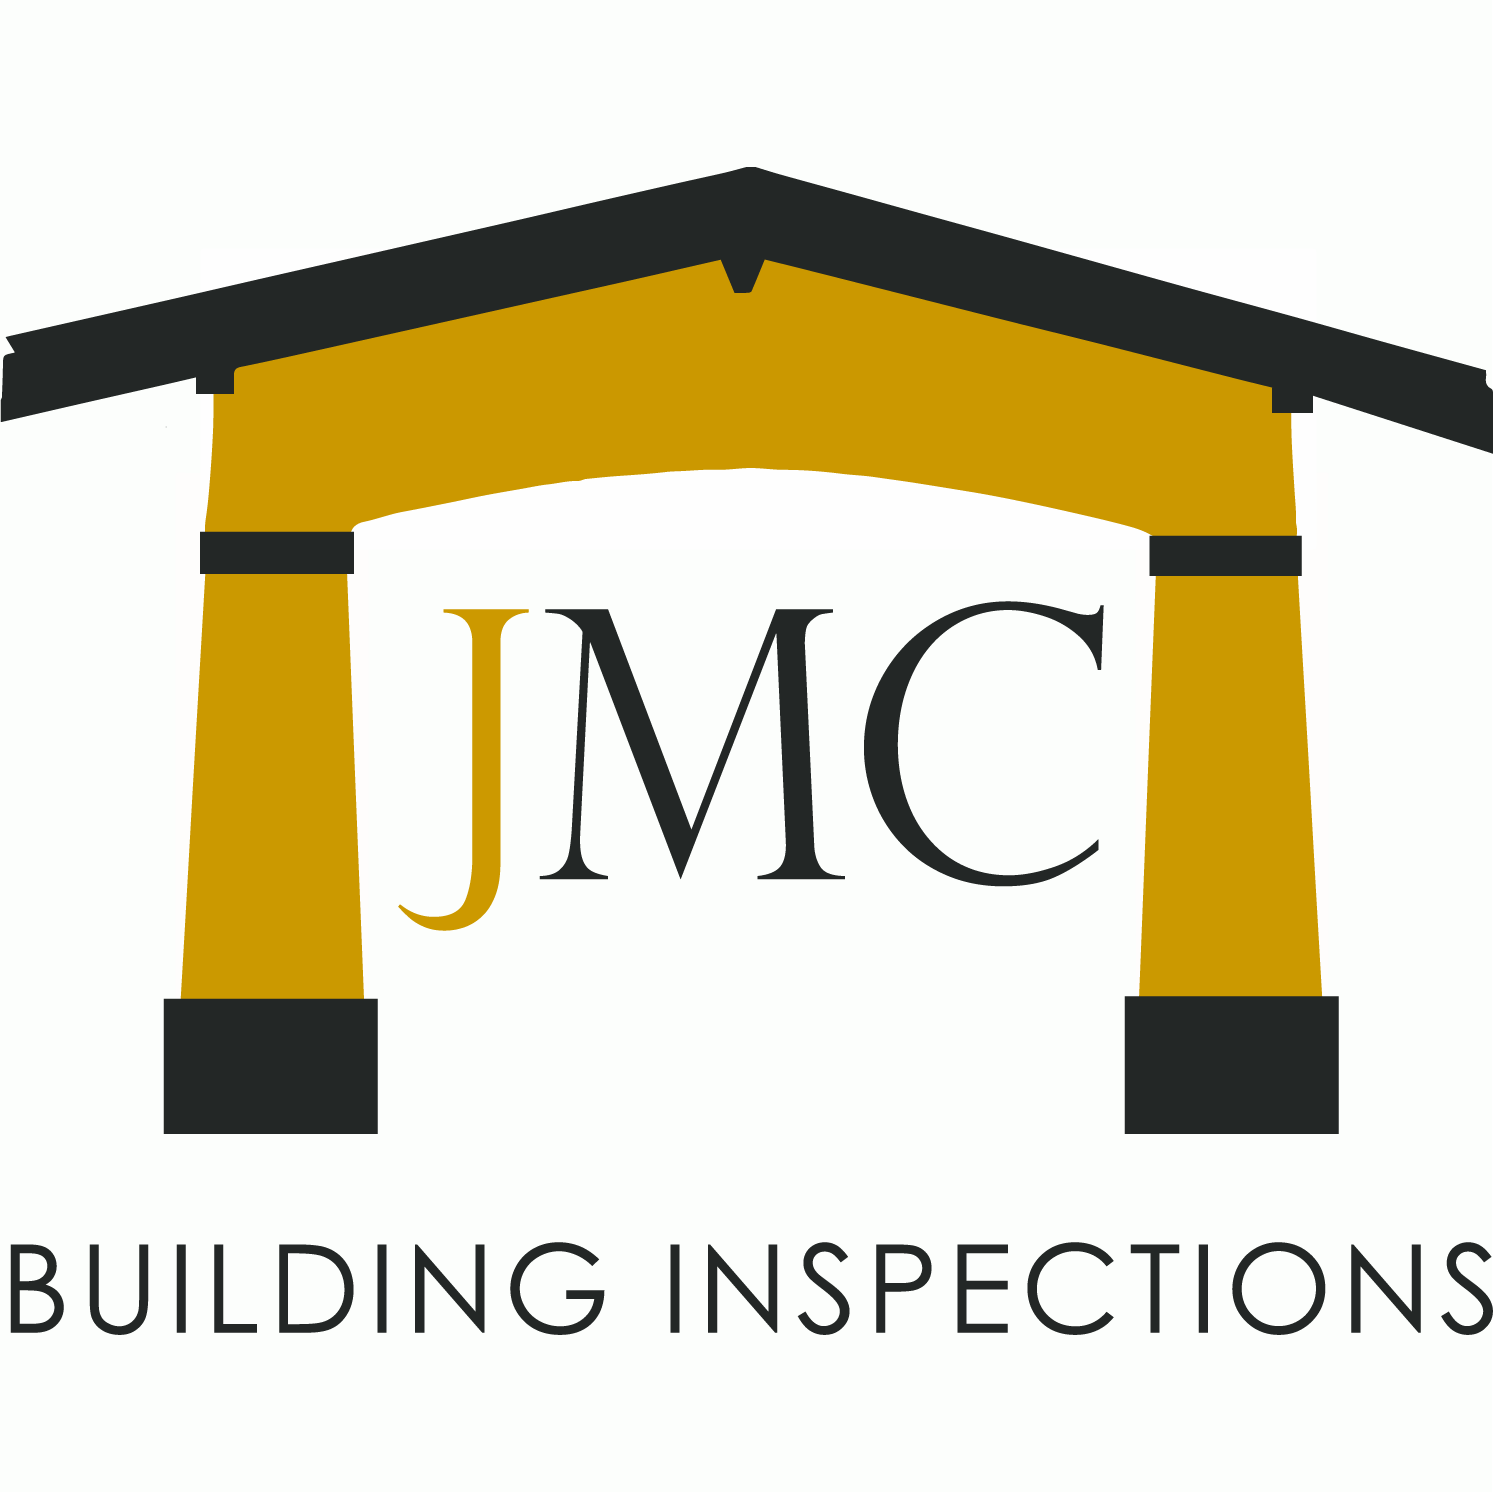 JMC – Bay Area Building Inspection Services